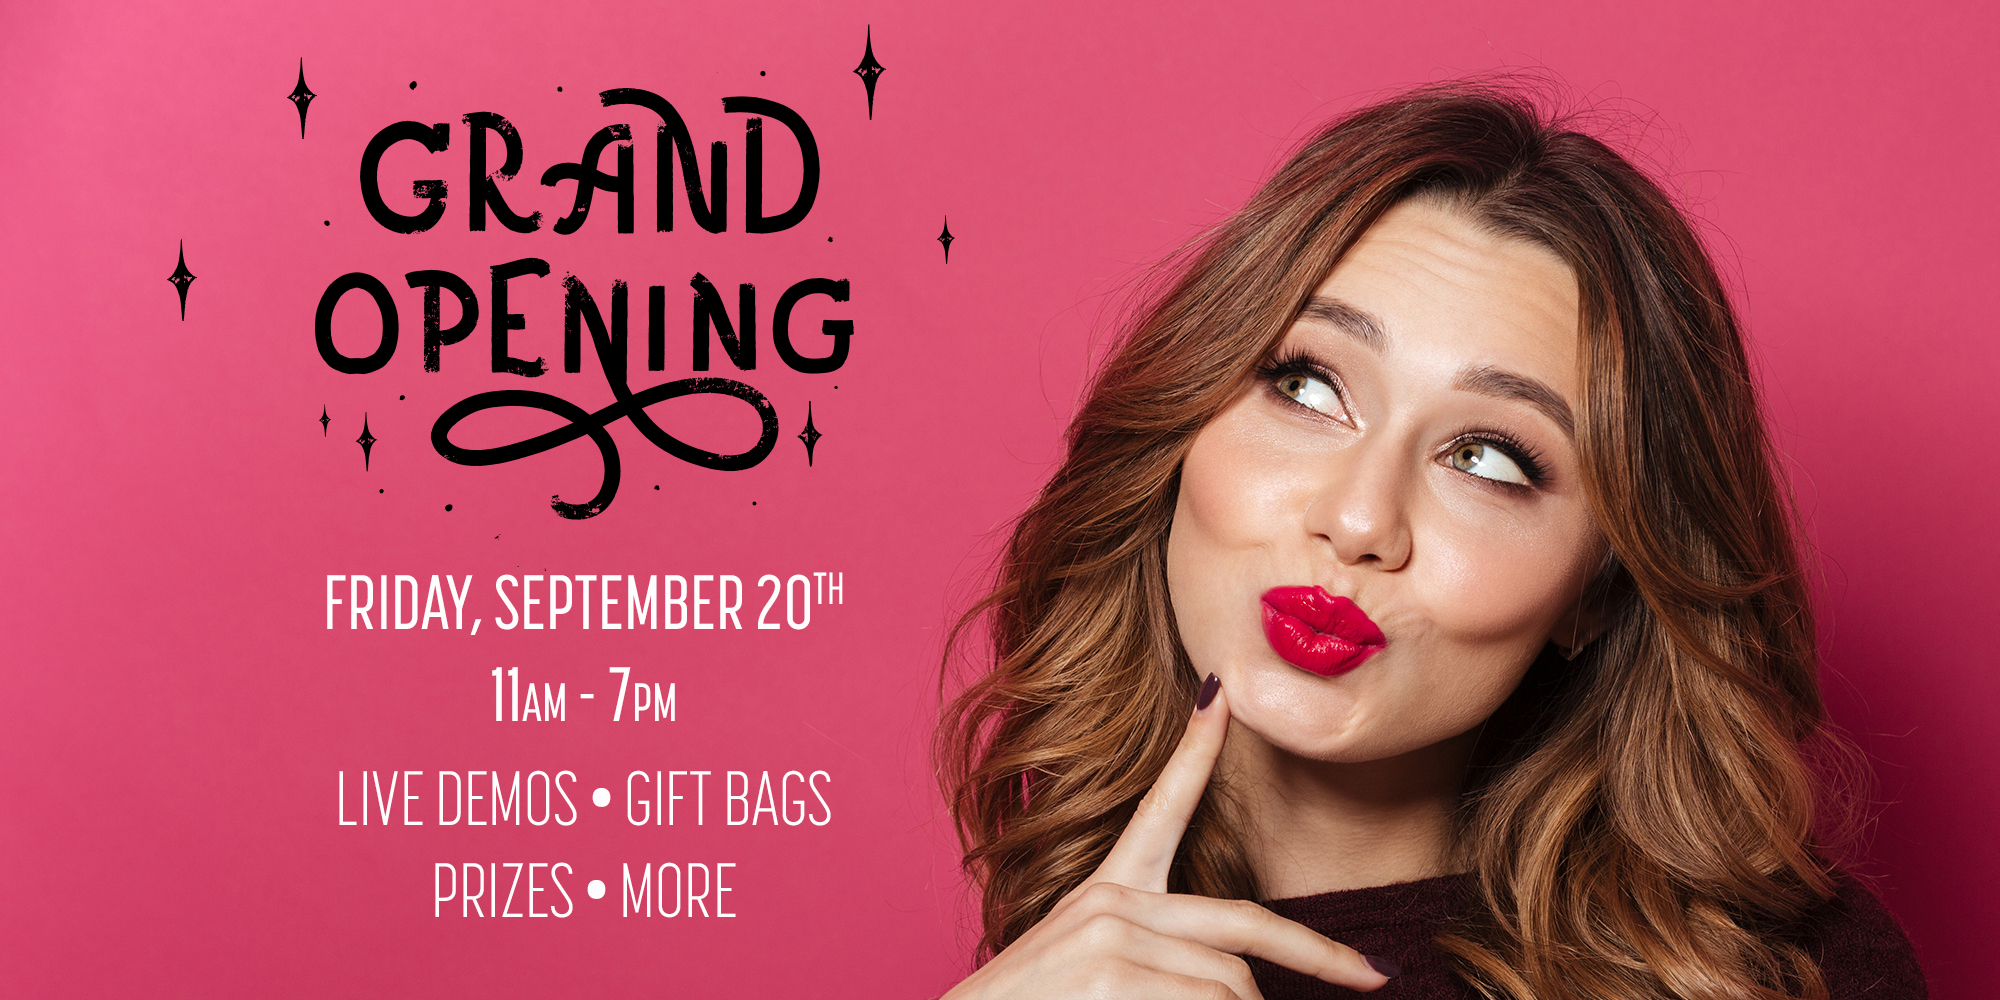 Ageless Skin Rejuvenation - Grand Opening on September 20th